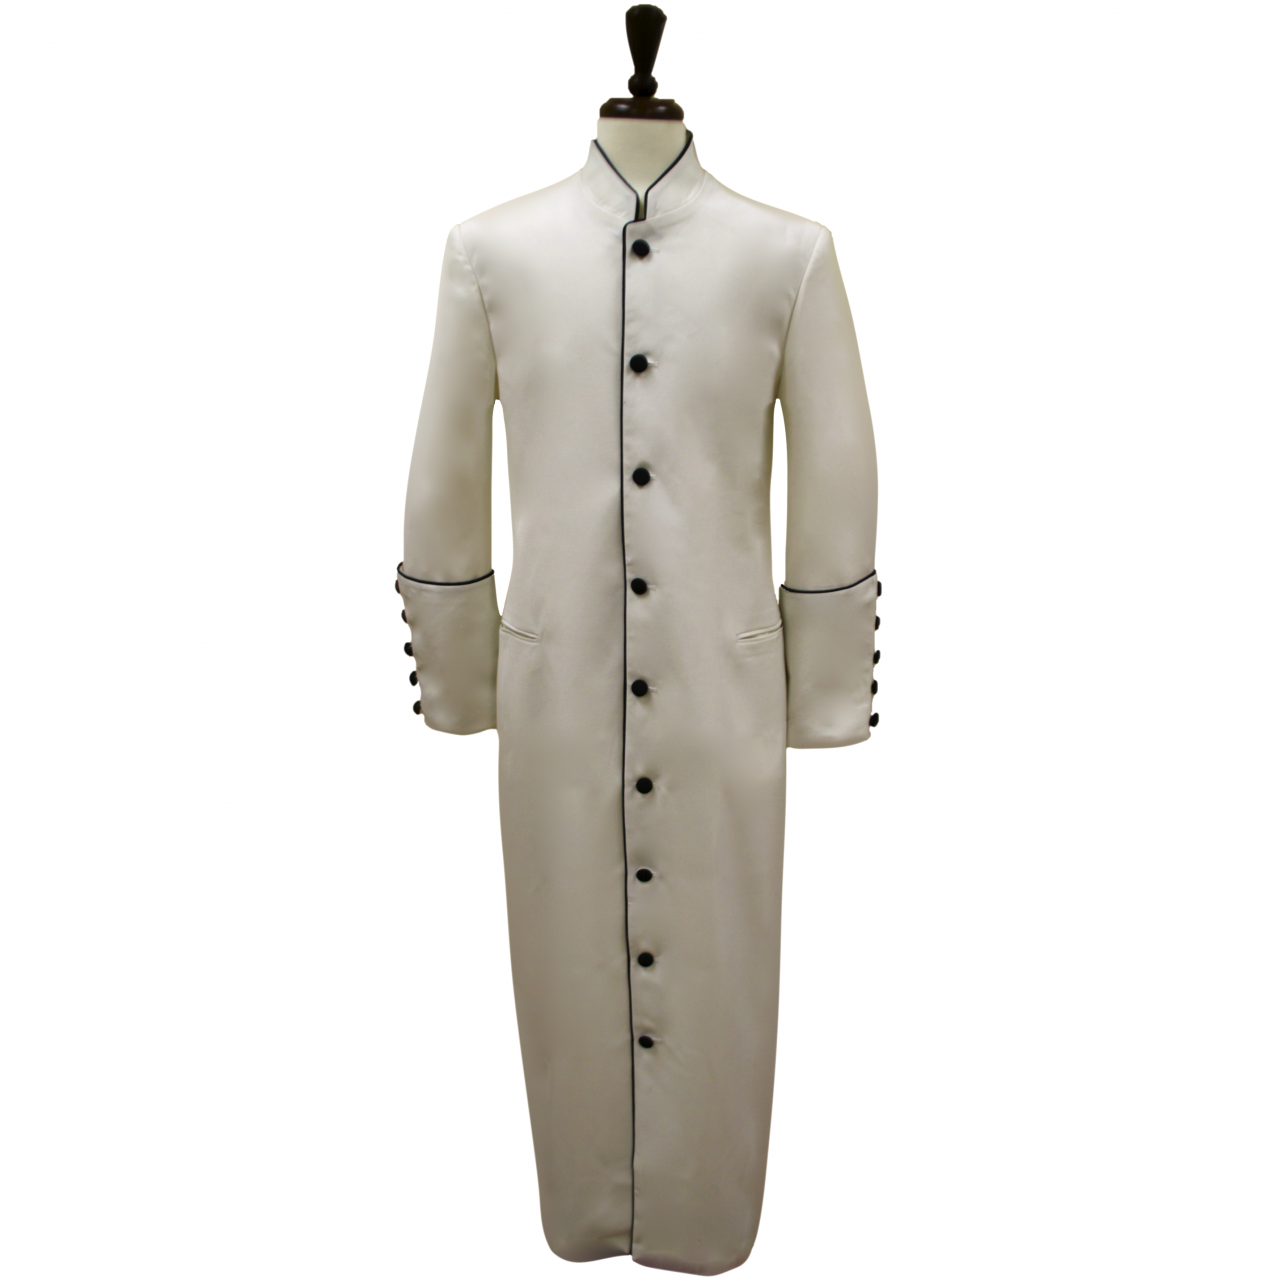 157 M. Men's Classic Pastor/Clergy Robe - Ivory/Black